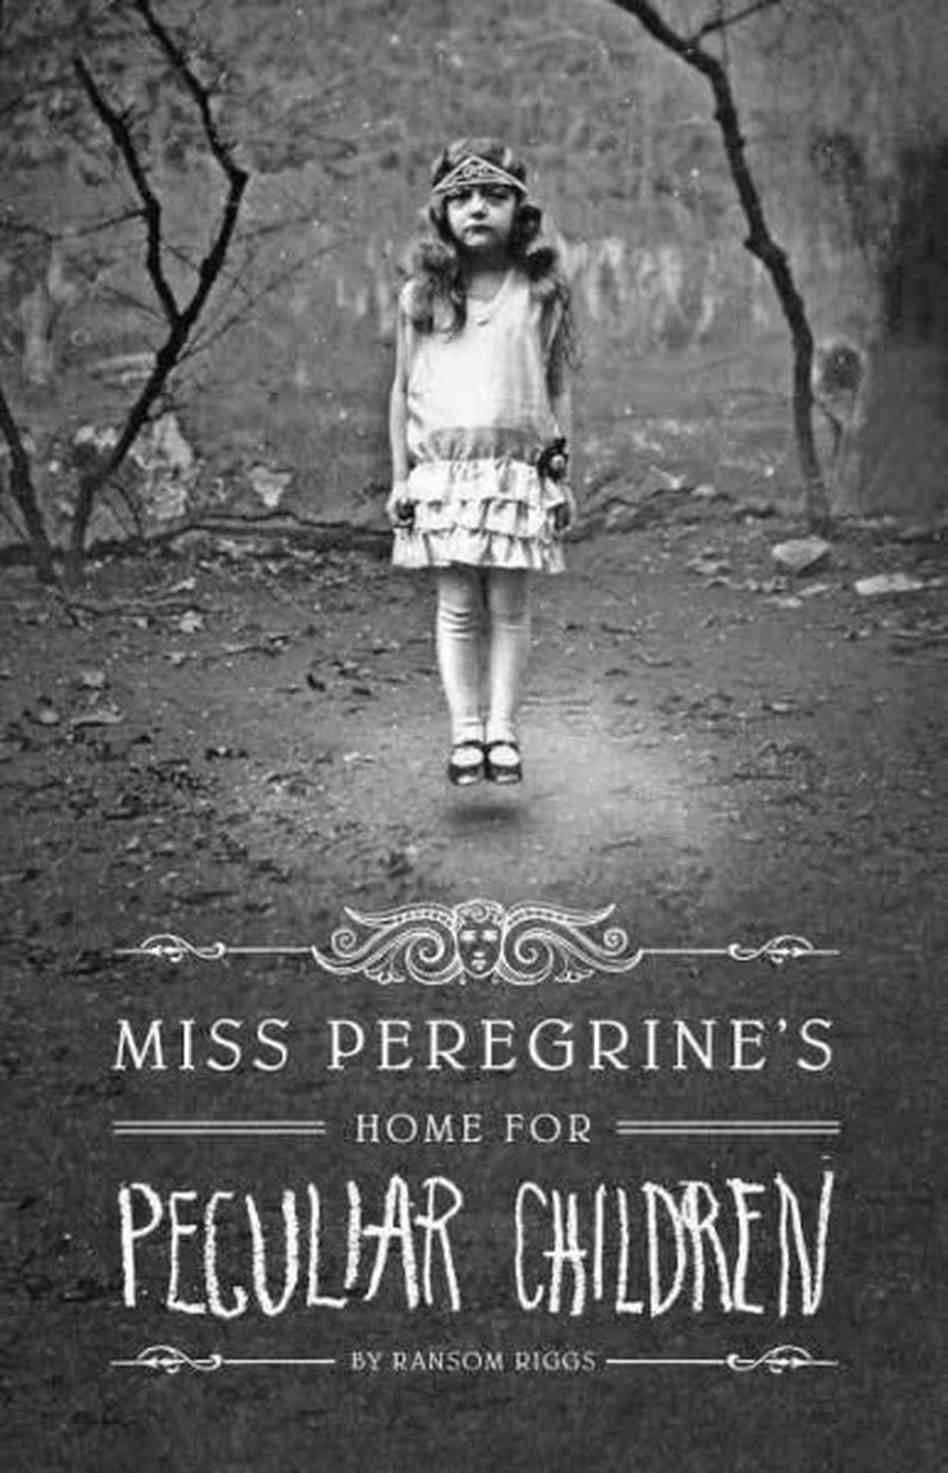 Miss Peregrines Home of Peculiar Children by Ransom Riggs